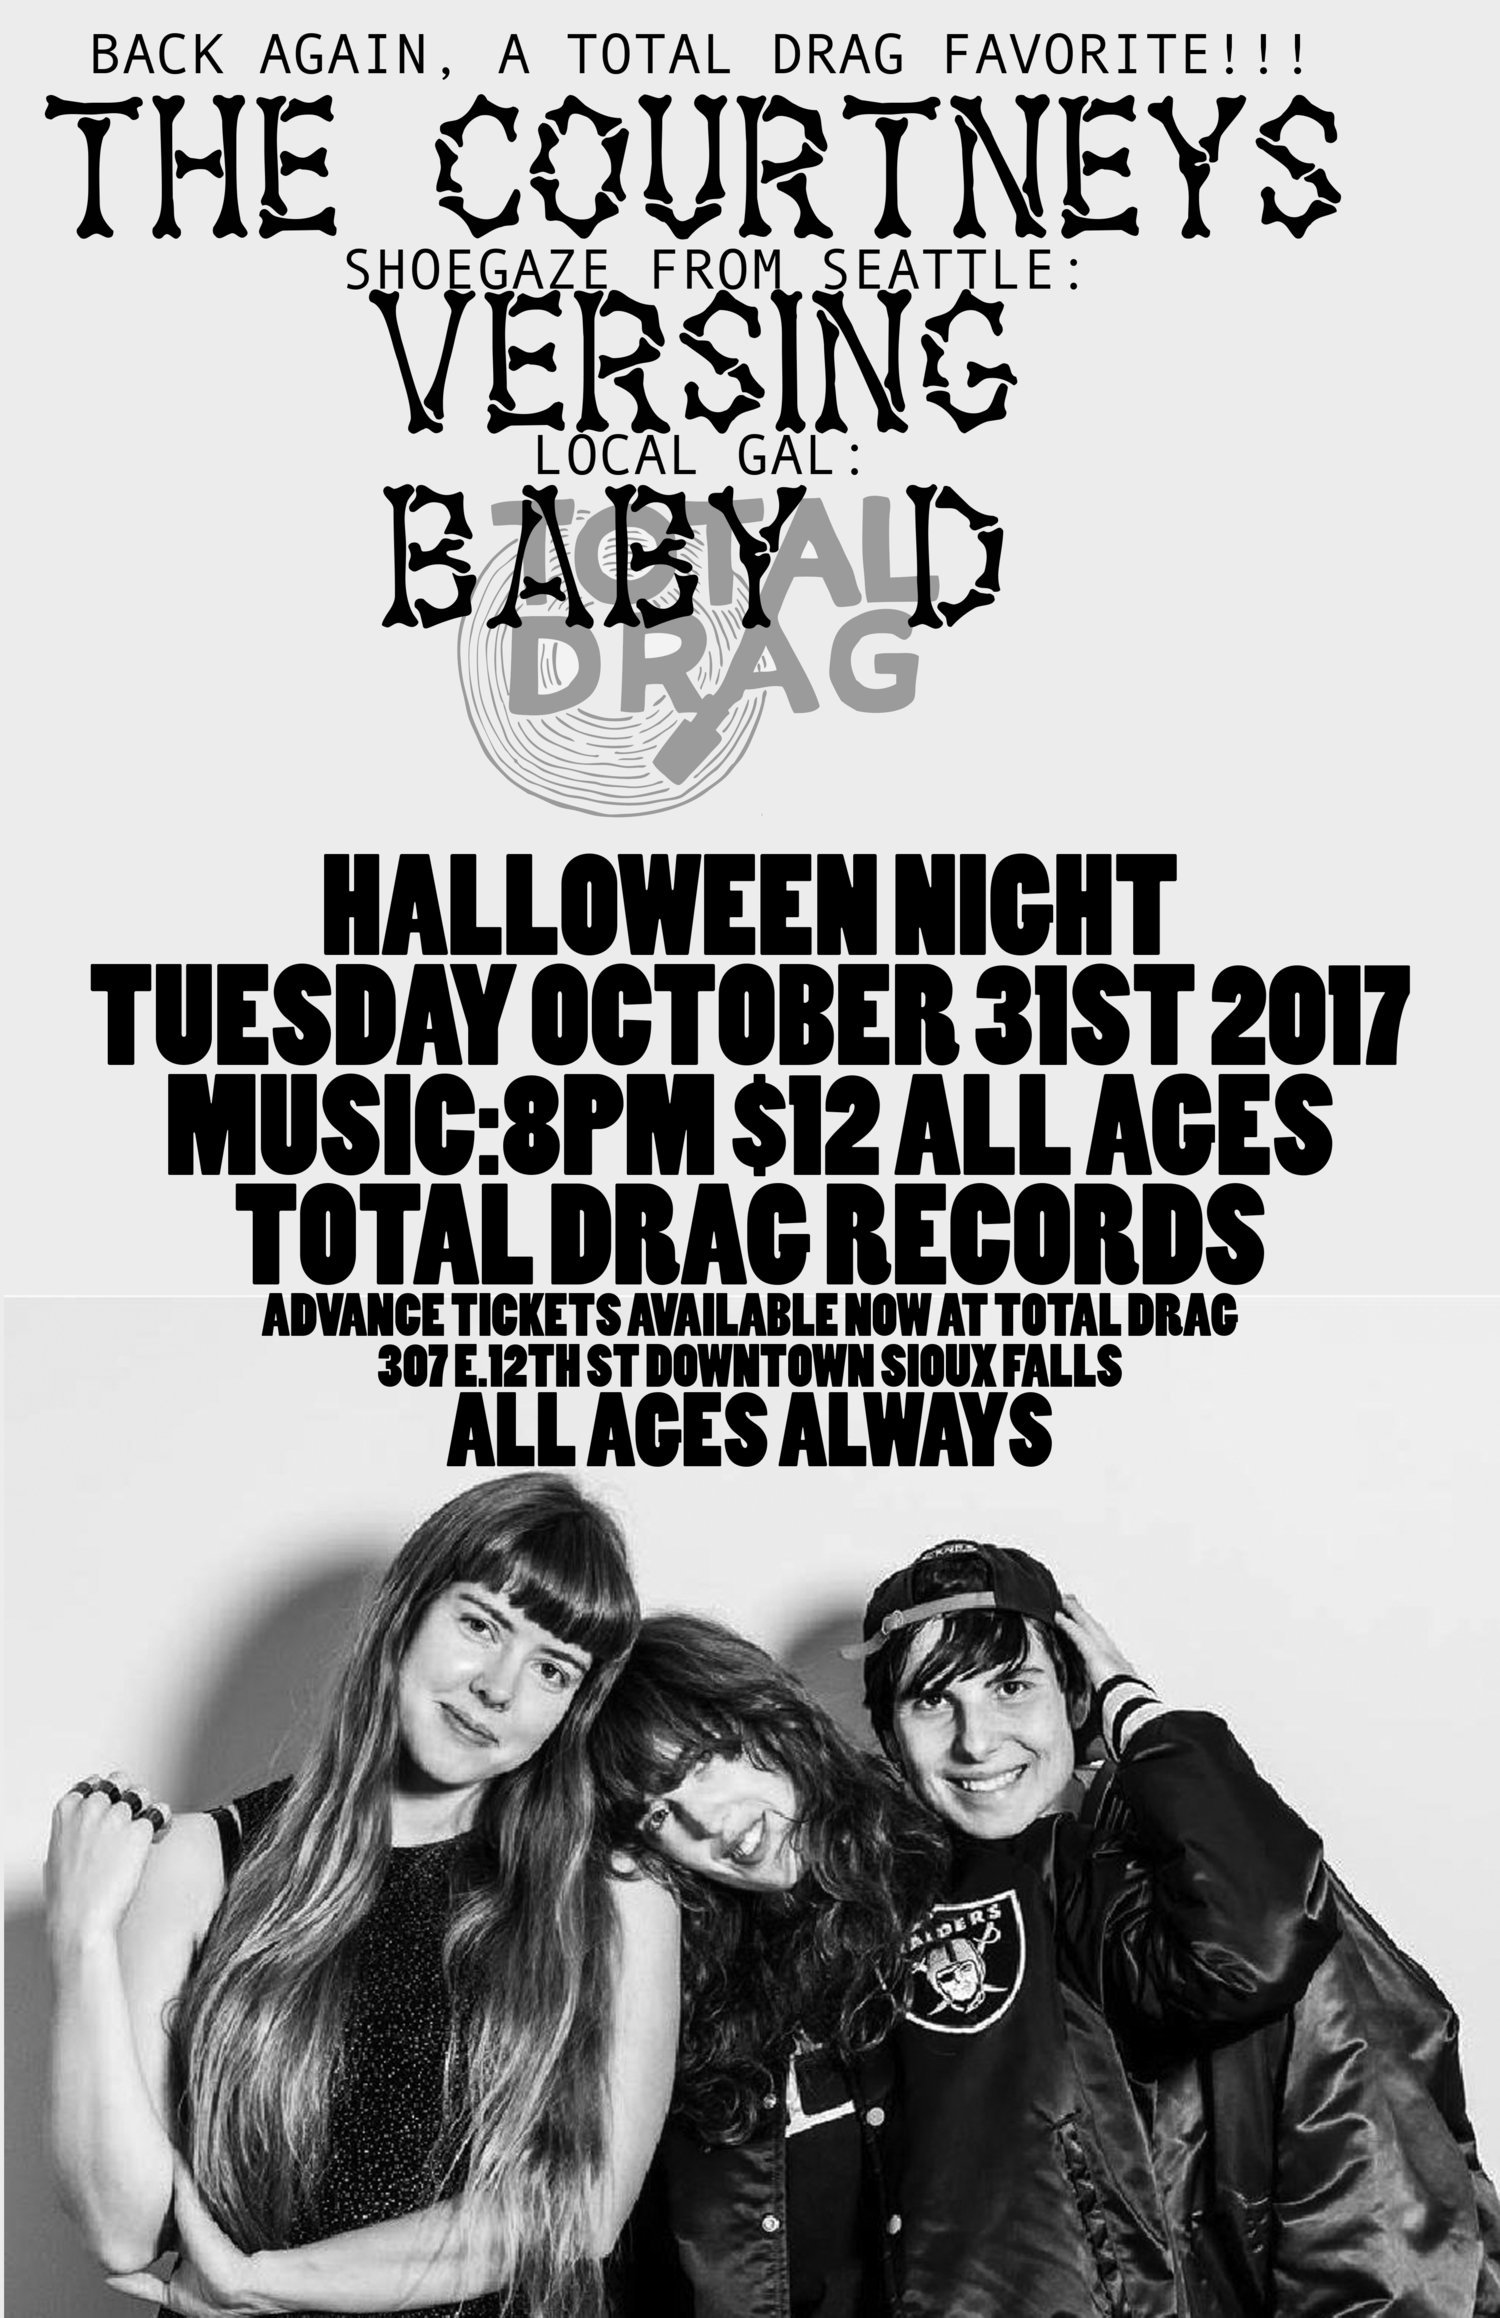 the courtneys return on halloween! — total drag